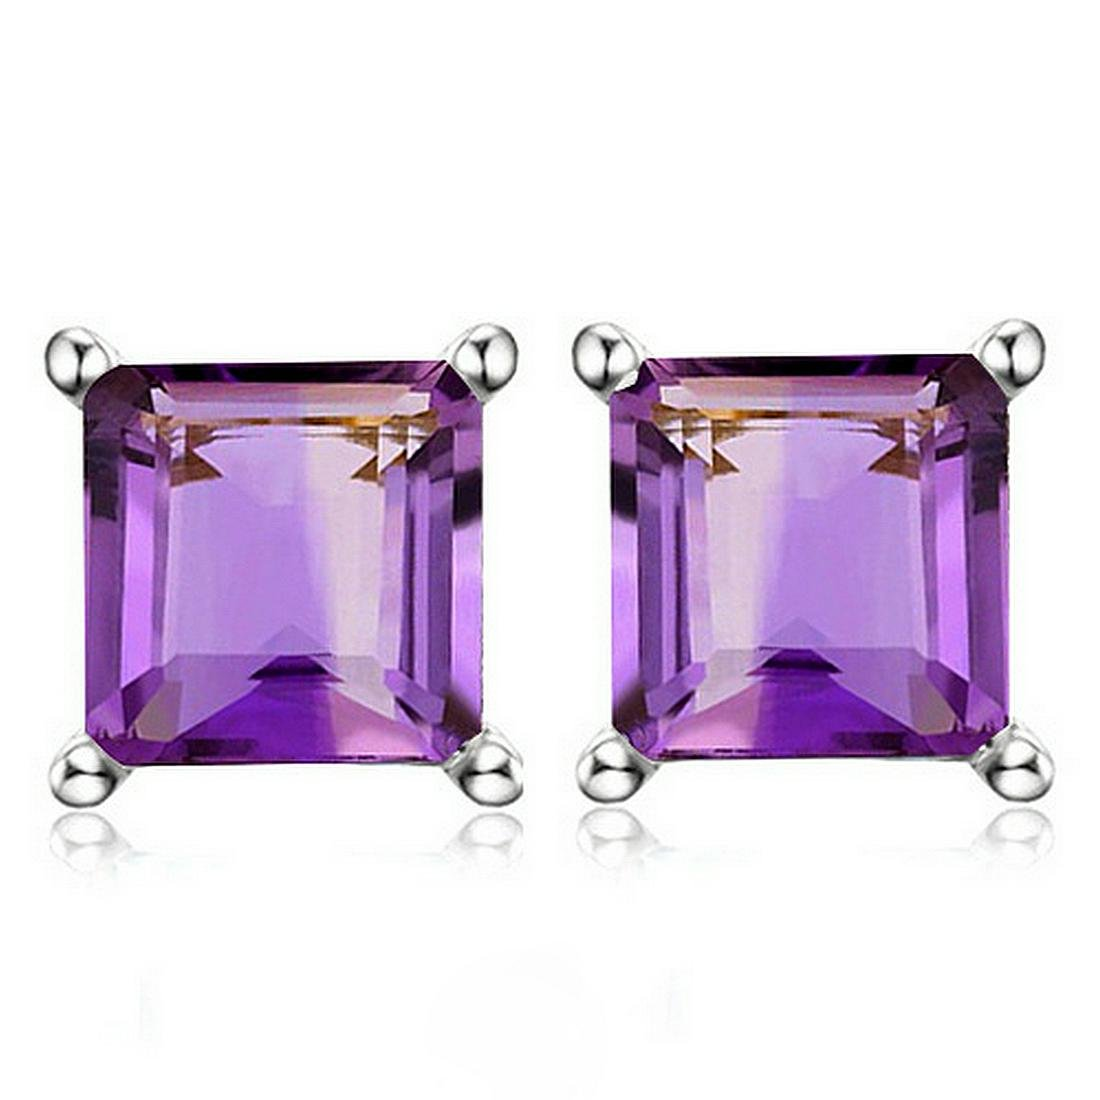 6MM Square Step Cut Natural Amethyst Stud Earrings in